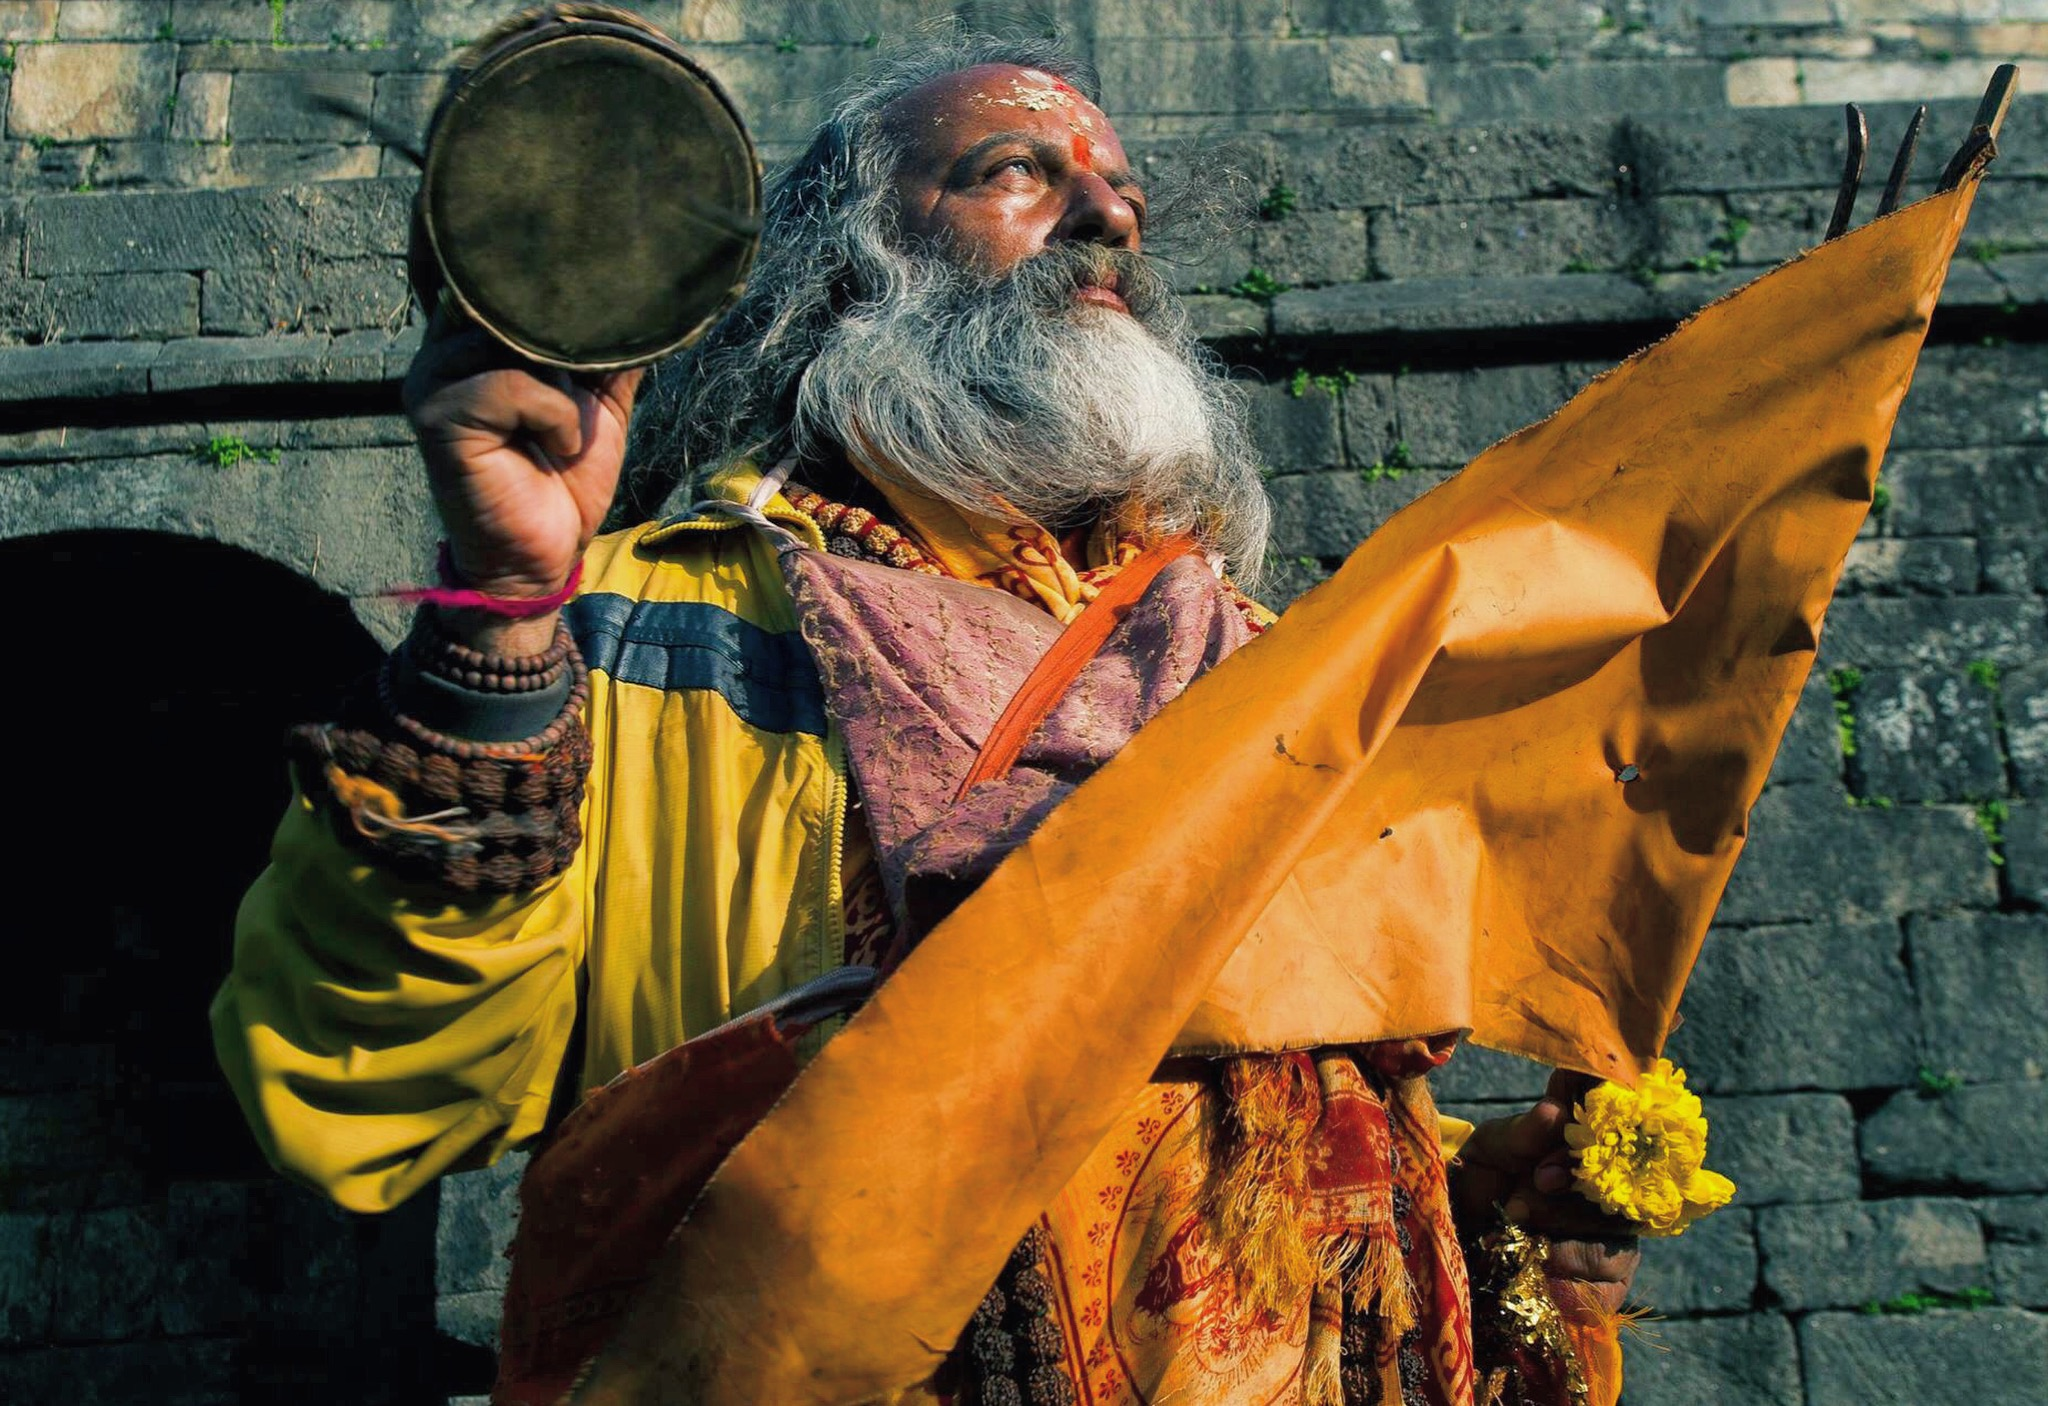 A sadhu, or holy man, originally from England prays in the setting sun on Pashupatinath's western bank.